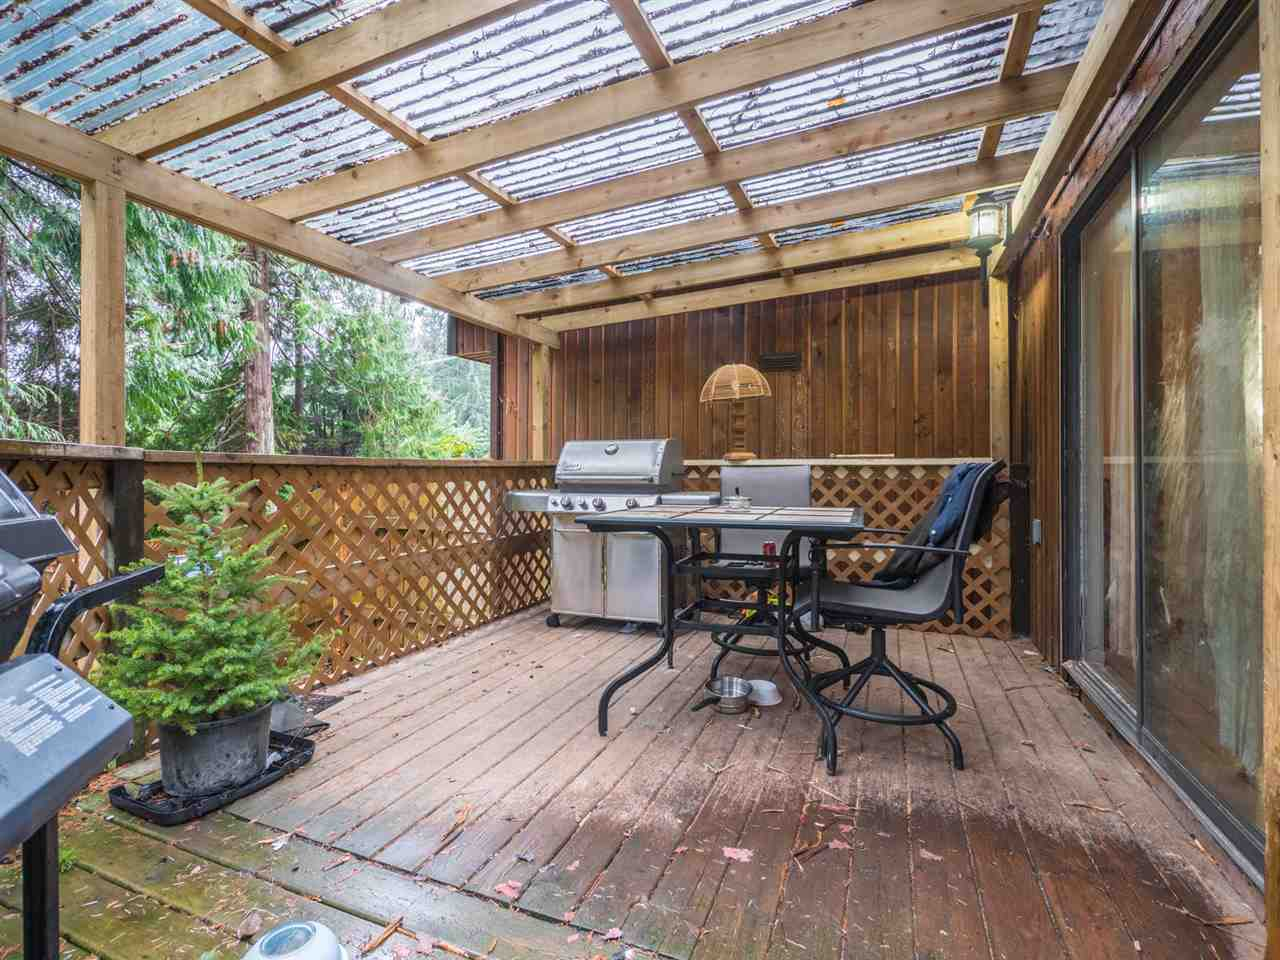 Photo 13: Photos: 5592 WAKEFIELD Road in Sechelt: Sechelt District Manufactured Home for sale (Sunshine Coast)  : MLS® # R2230720